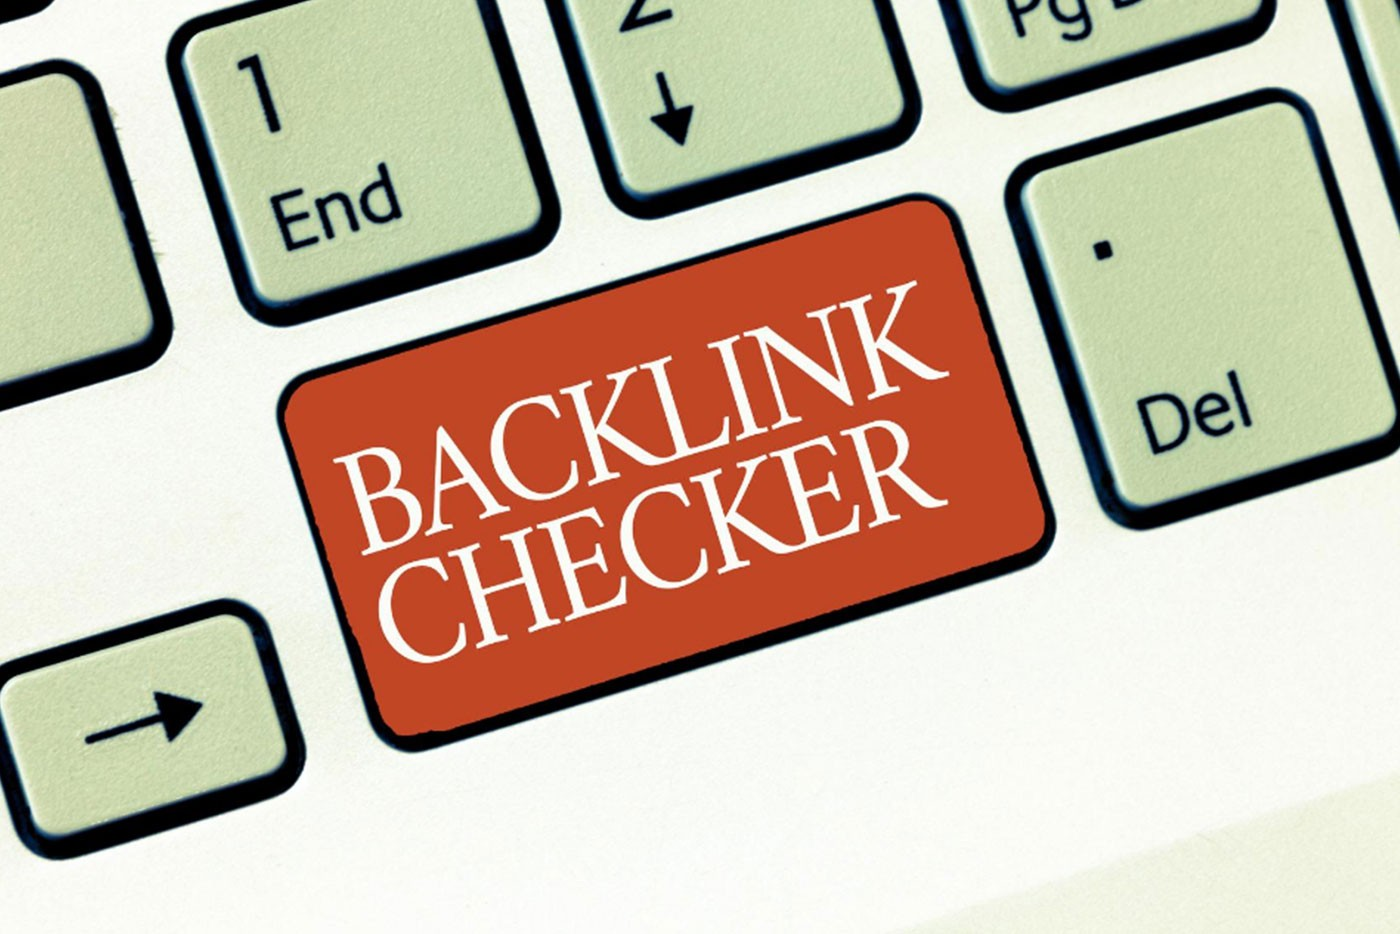 Free backlink checker tools